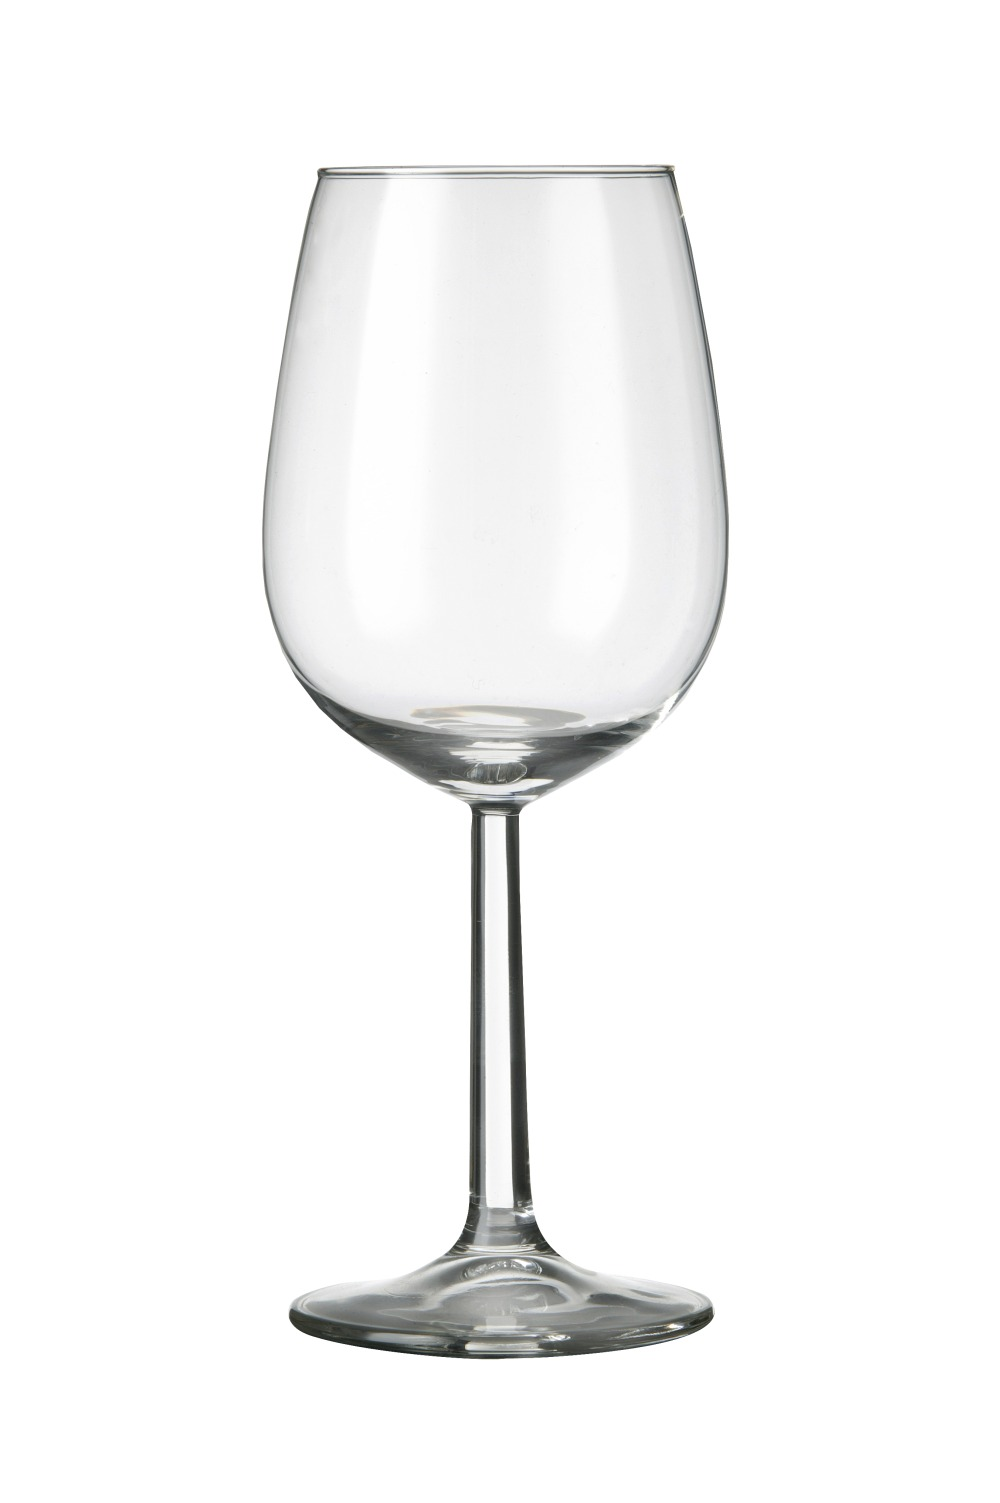 royal_leerdam_wijnglas_bouquet_35cl.jpg